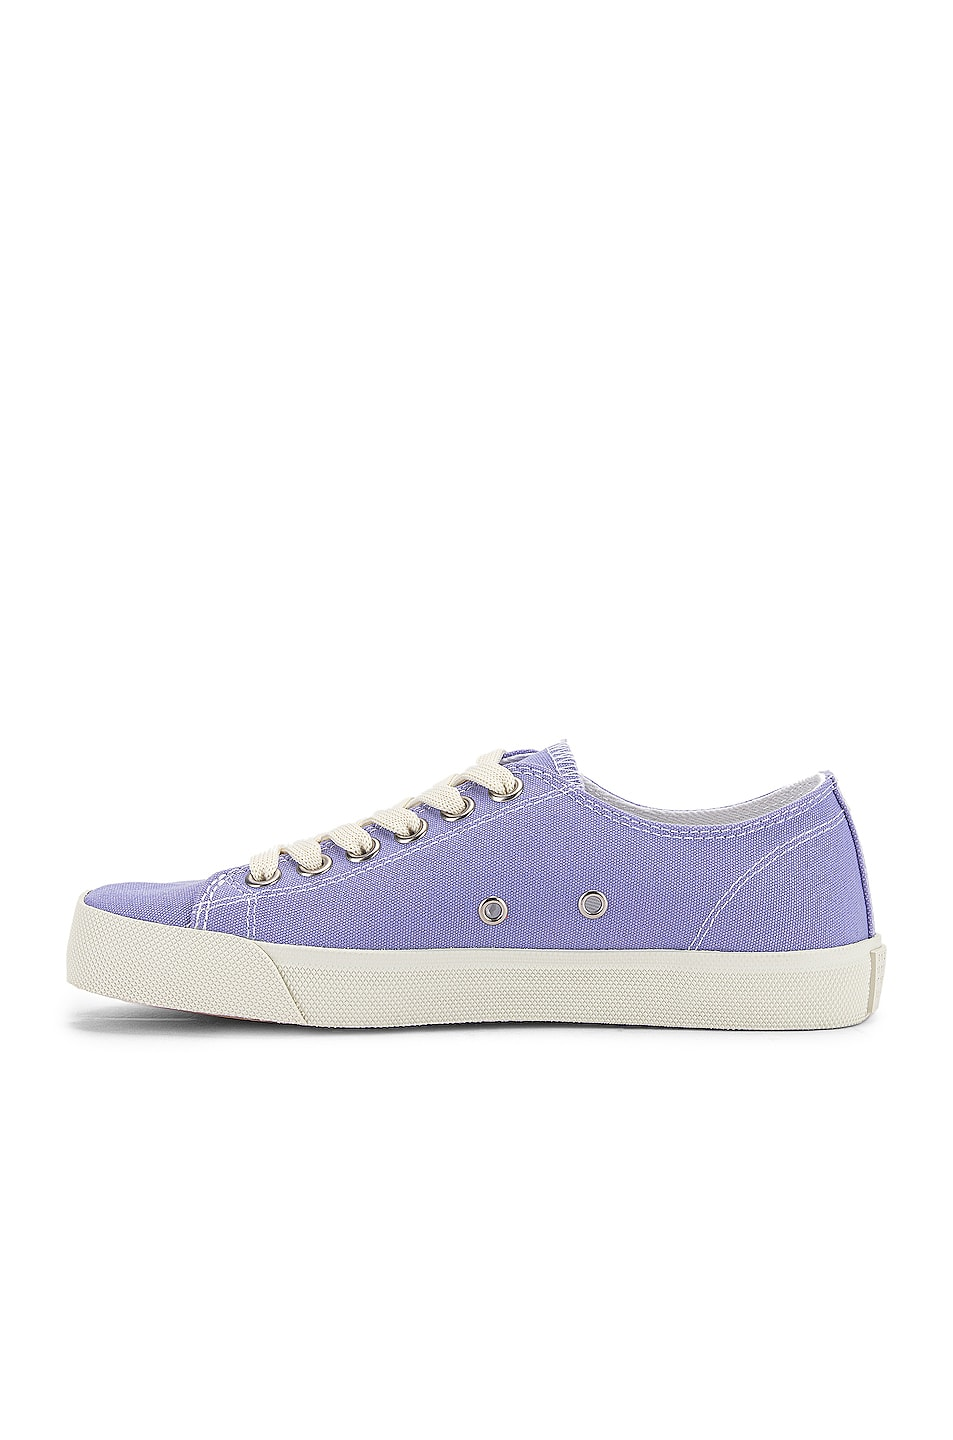 Image 5 of Maison Margiela Tabi Low Top Canvas Sneakers in Thistle